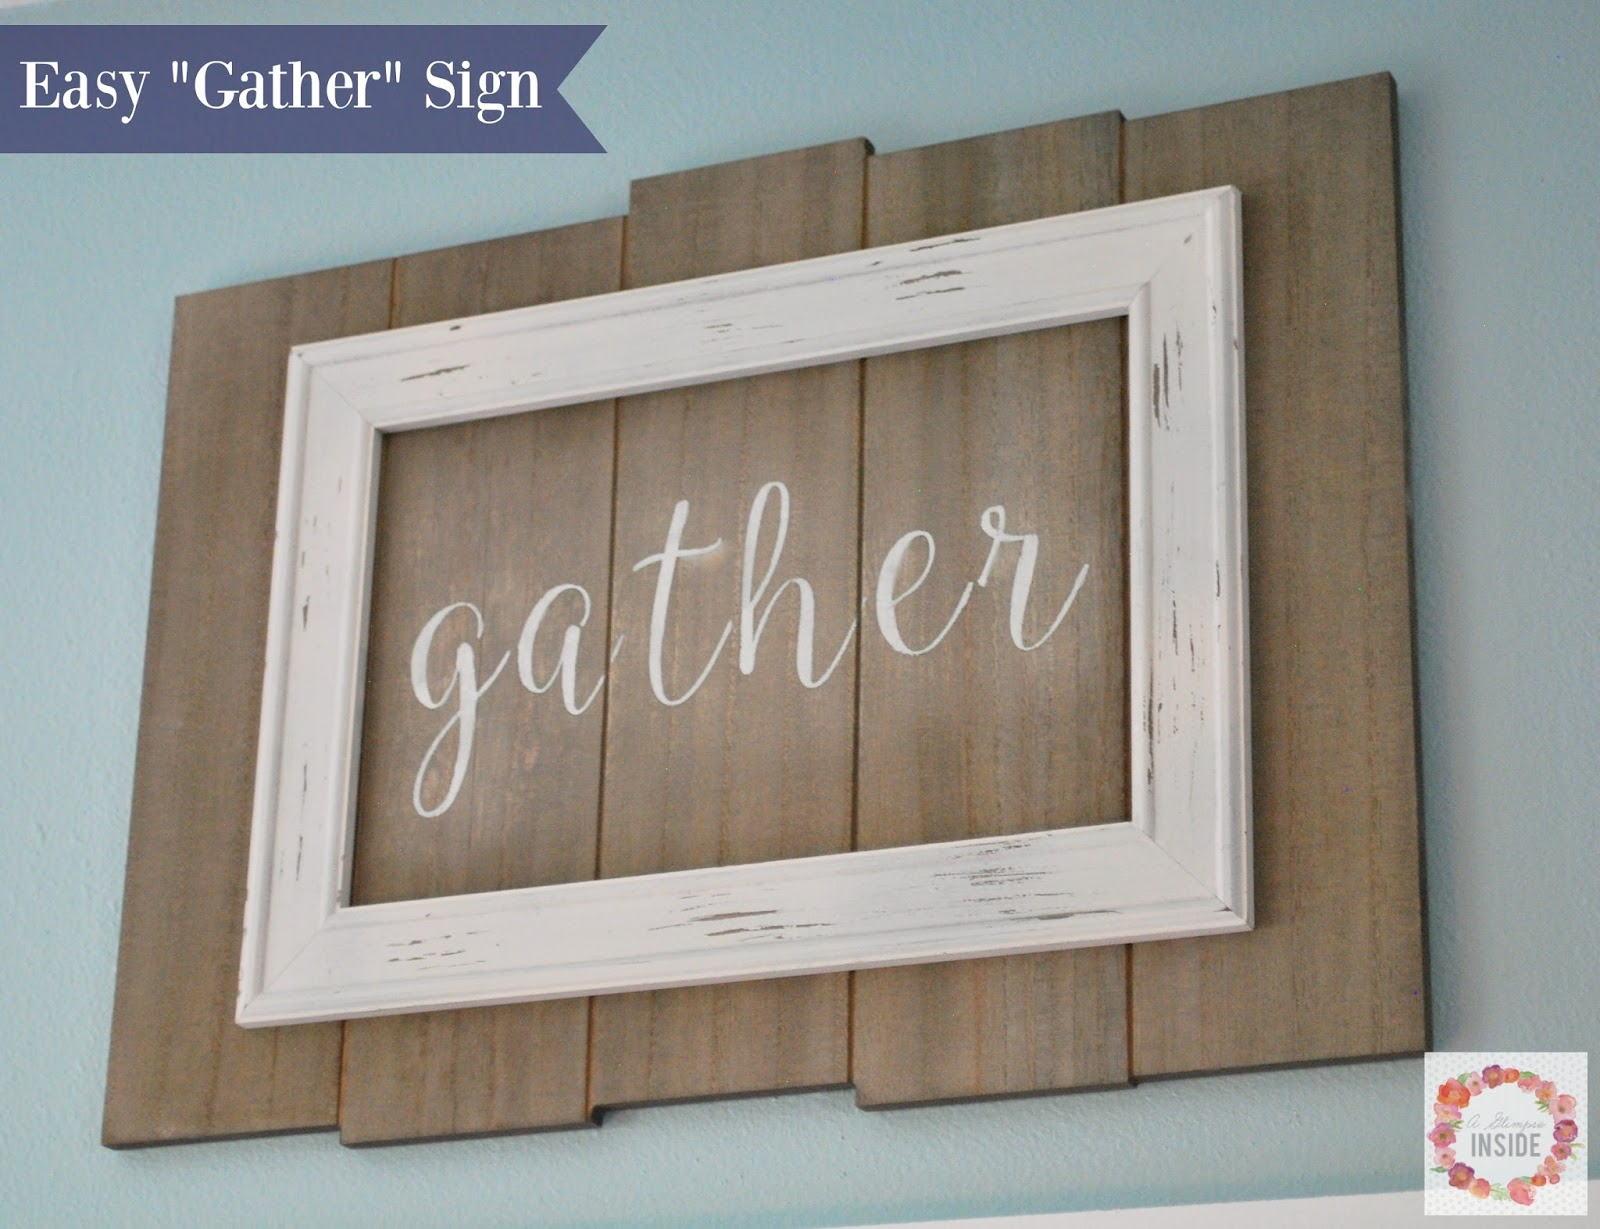 http://www.aglimpseinsideblog.com/2016/07/easy-gather-sign.html